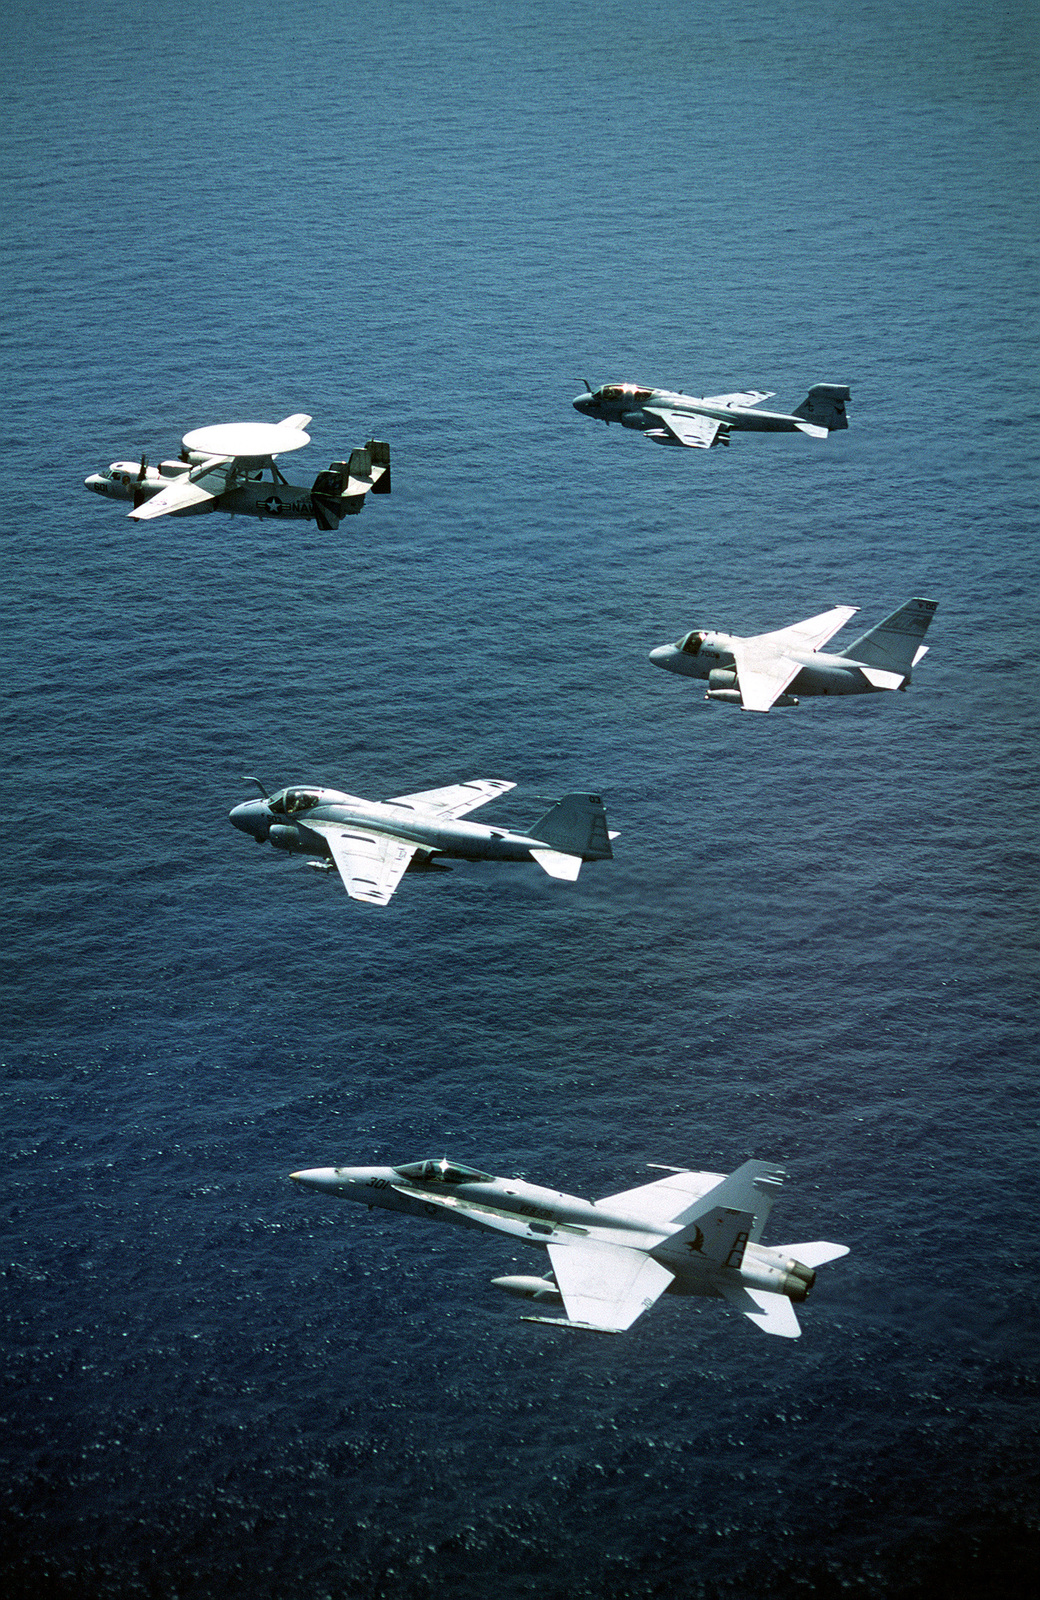 A group of aircraft assigned to the nuclear-powered aircraft carrier USS GEORGE WASHINGTON (CVN-73) fly in formation. The aircraft are an E-2C Hawkeye, an EA-6B Prowler, an A-6E Intruder, an S-3 Viking and an F/A-18C Hornet